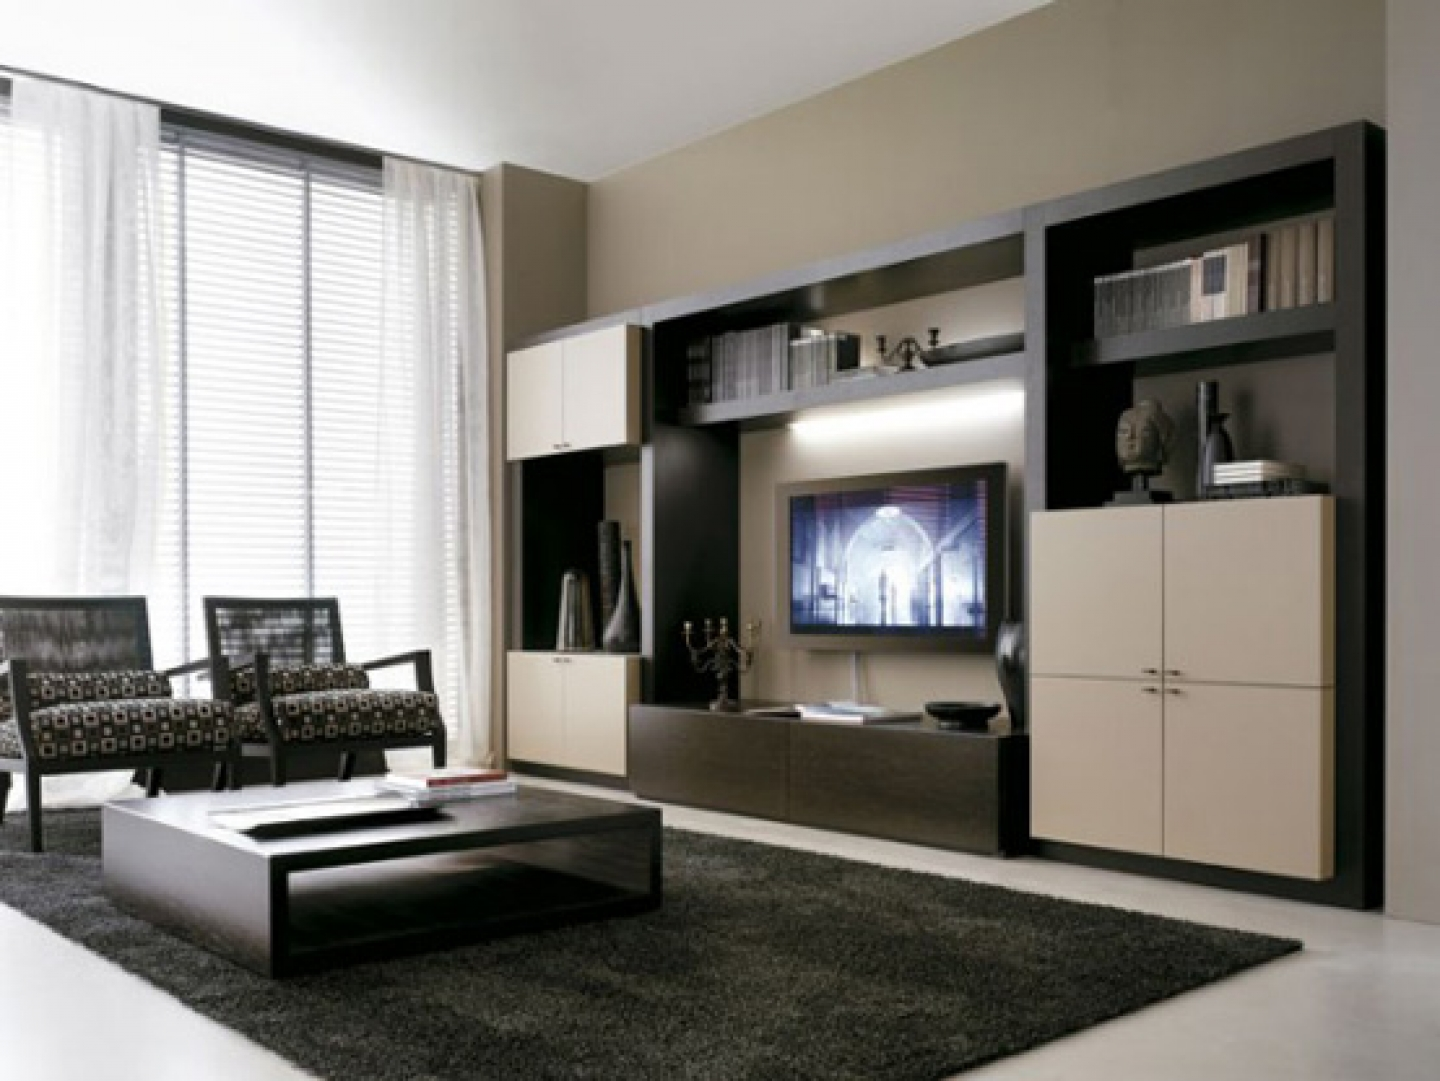 Living Room With Tv Unit 20 modern tv unit design ideas for bedroom & living room with pictures